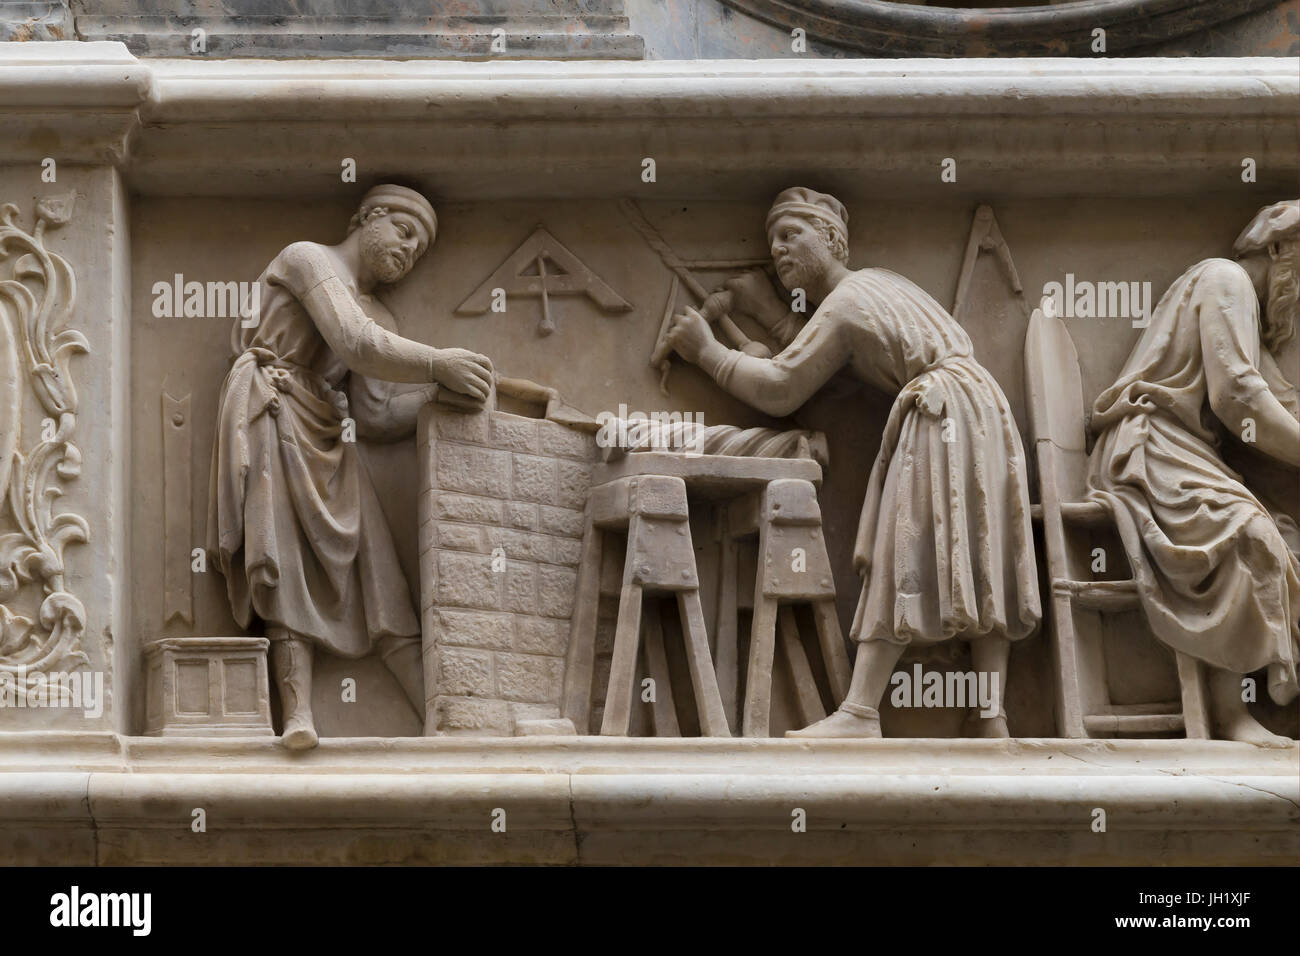 Orsanmichele wall carvings, Guild of Carpenters,  Florence, Italy,  Europe - Stock Image